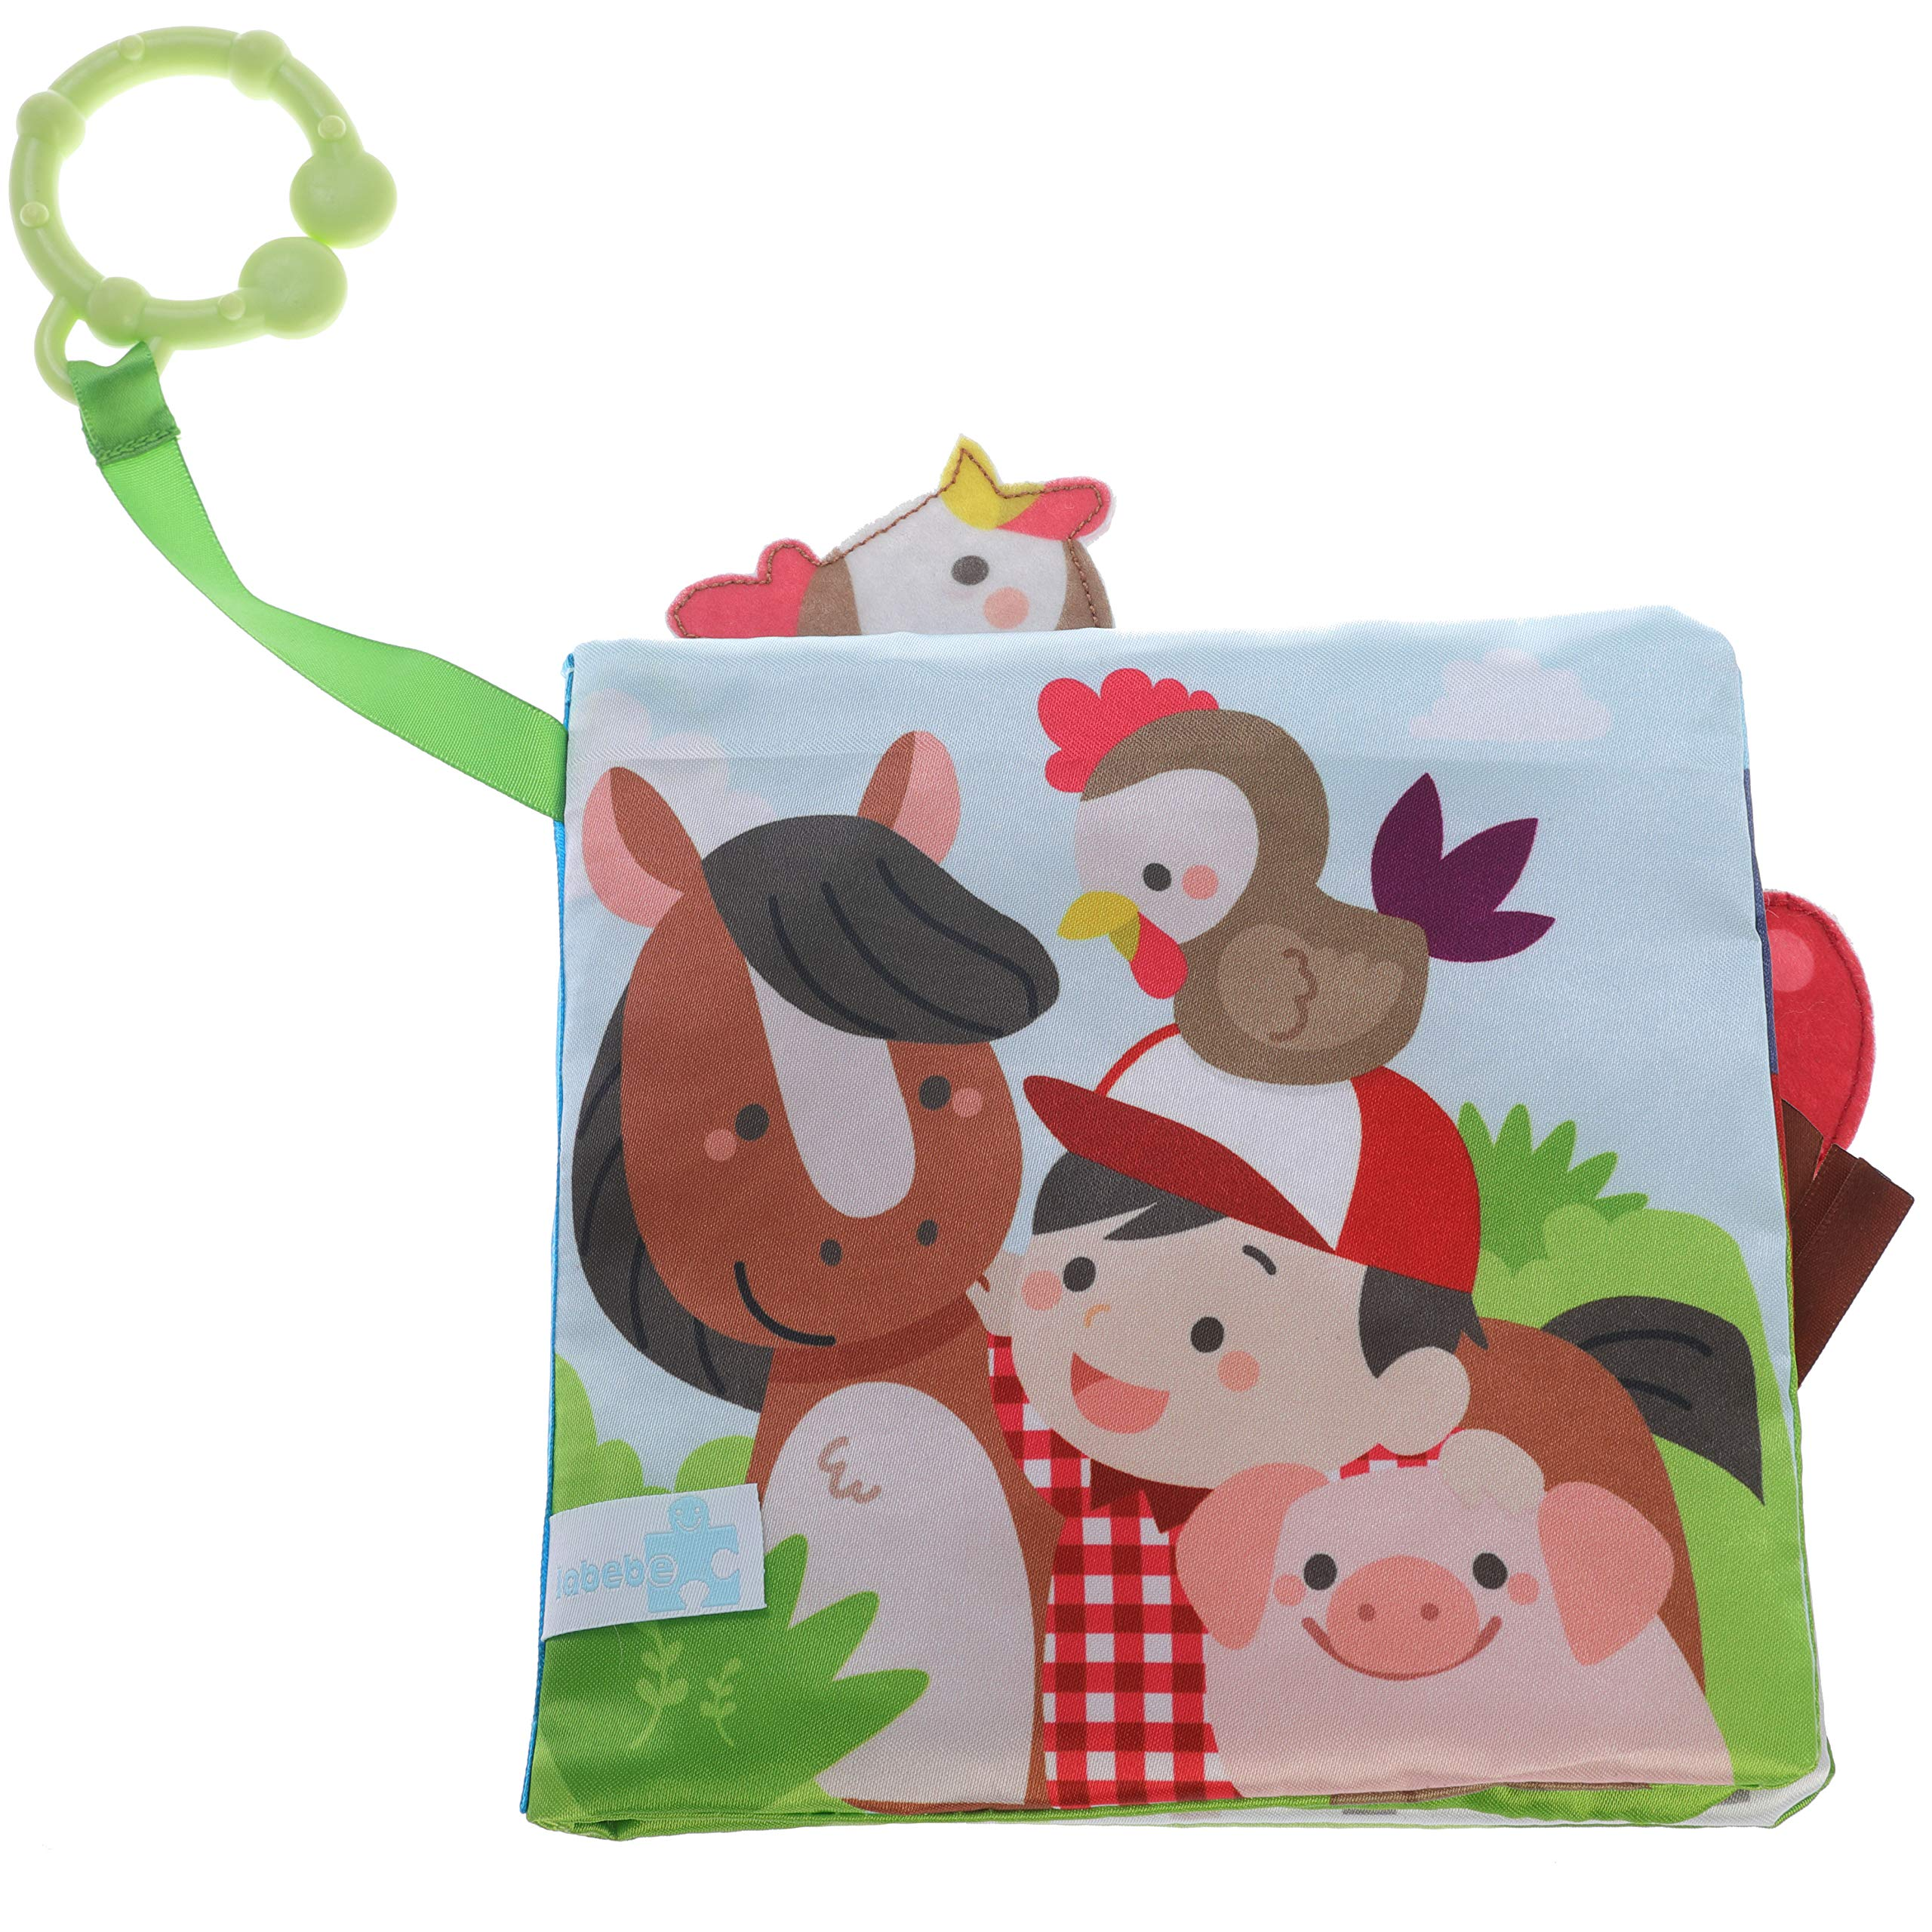 Beautiful Valley Farm Cloth Book for Newborn Babies, 1 Year Old & Toddler Soft Book/Toy Book/Fabric Book